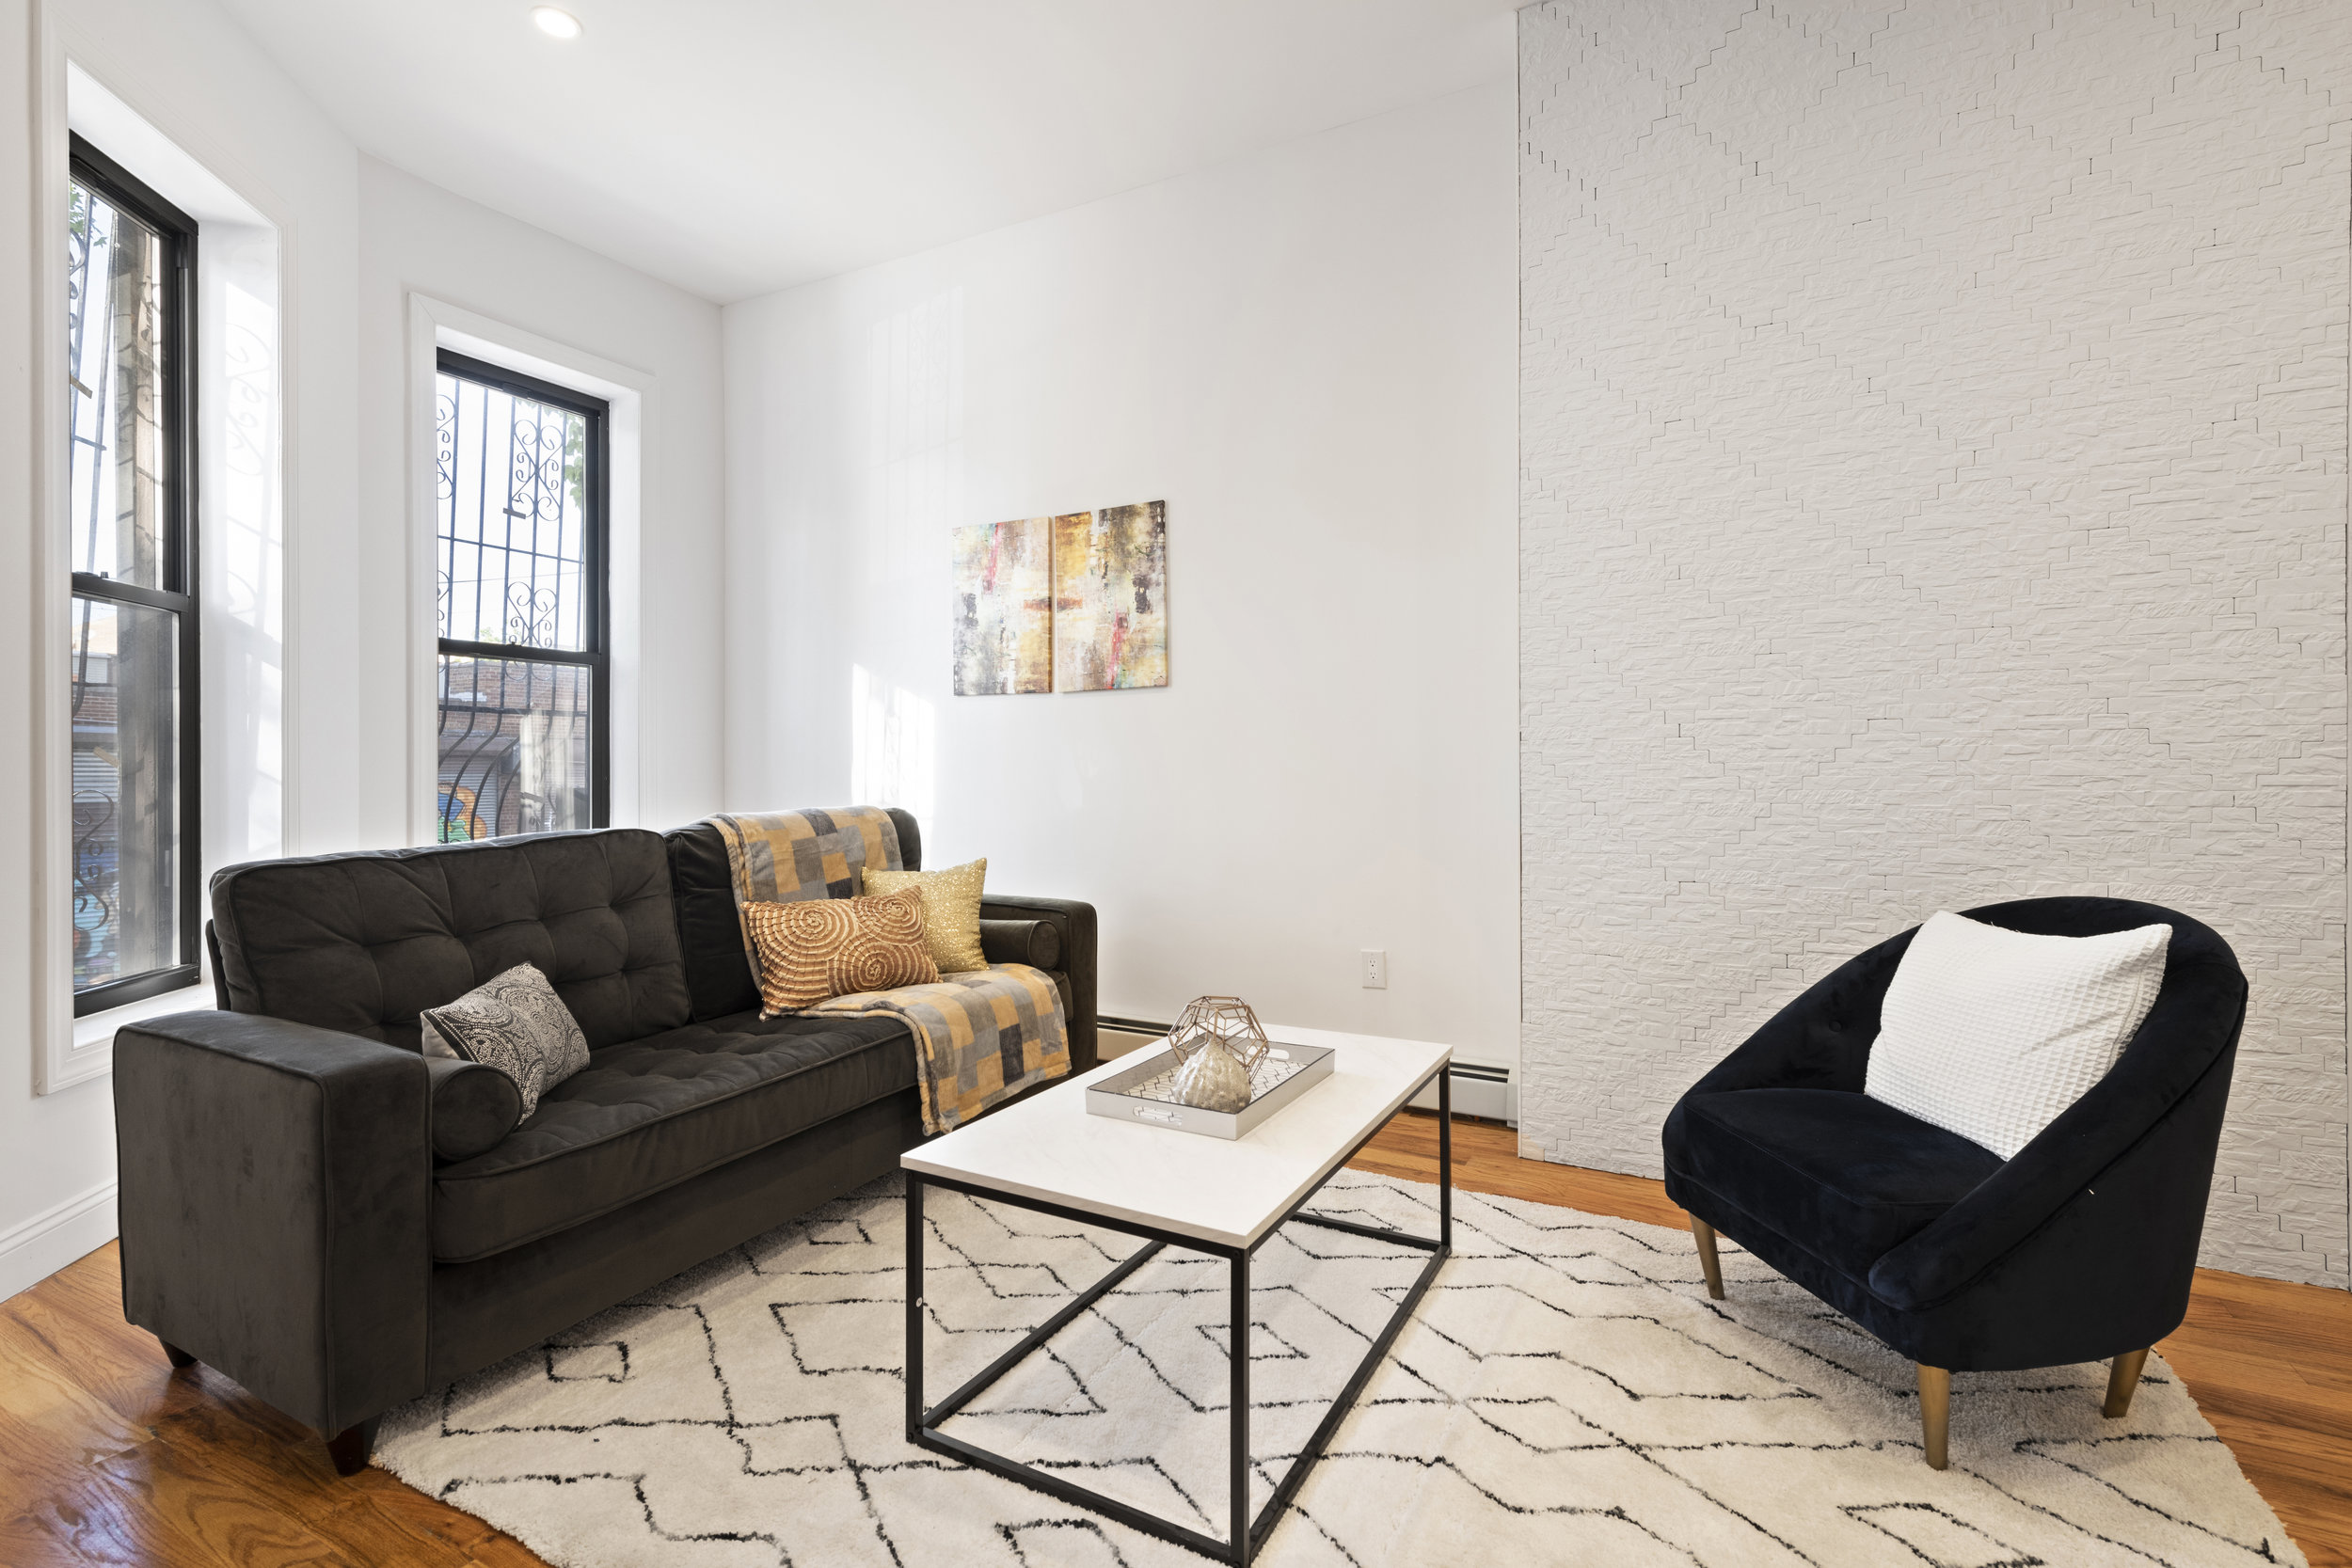 318 VAN BUREN STREET - $1,299,000 // 6 Beds // 3.5 Baths // 2,246 SQFTA beautiful two-family townhouse nestled on a tree-lined street in Bedford-Stuyvesant, 318 Van Buren is a paradigm of classic Brooklyn living. Features of this 2,246 sq. ft. home include a charming redbrick façade, gorgeous hardwood floors, a finished basement, a lush backyard, a lovely 4-bedroom, 2.5-bathroom owner's duplex with a washer/dryer, and an income-producing rental unit.